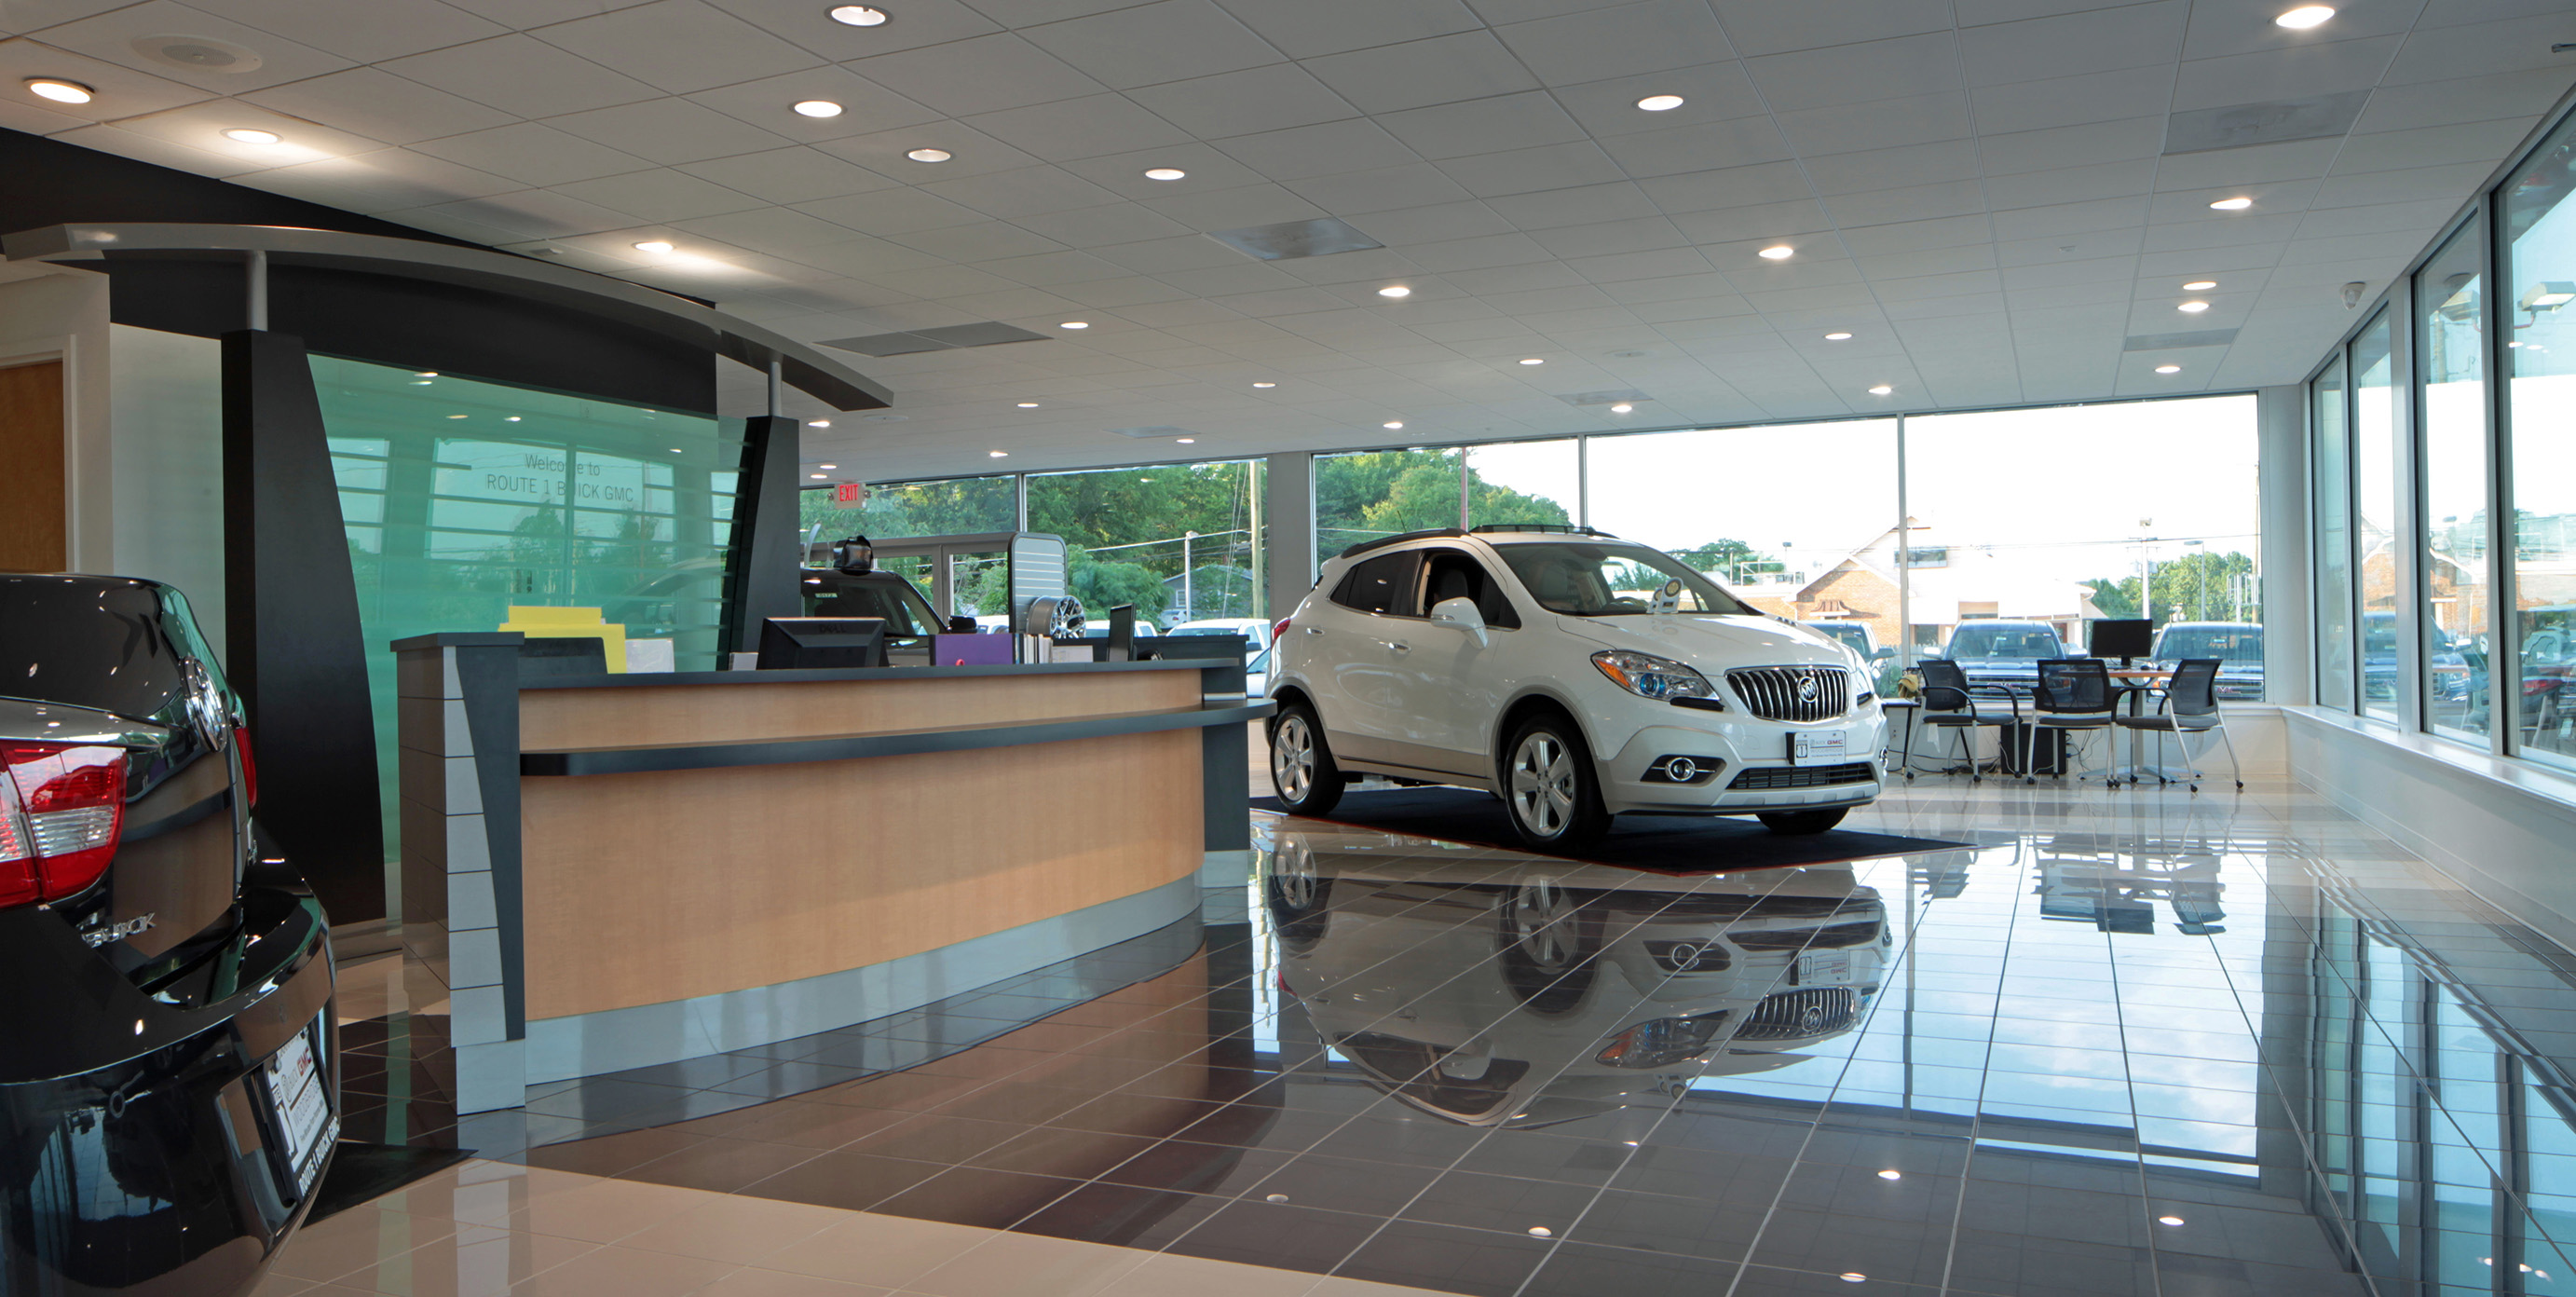 route 1 buick gmc | loveless porter architects, llc